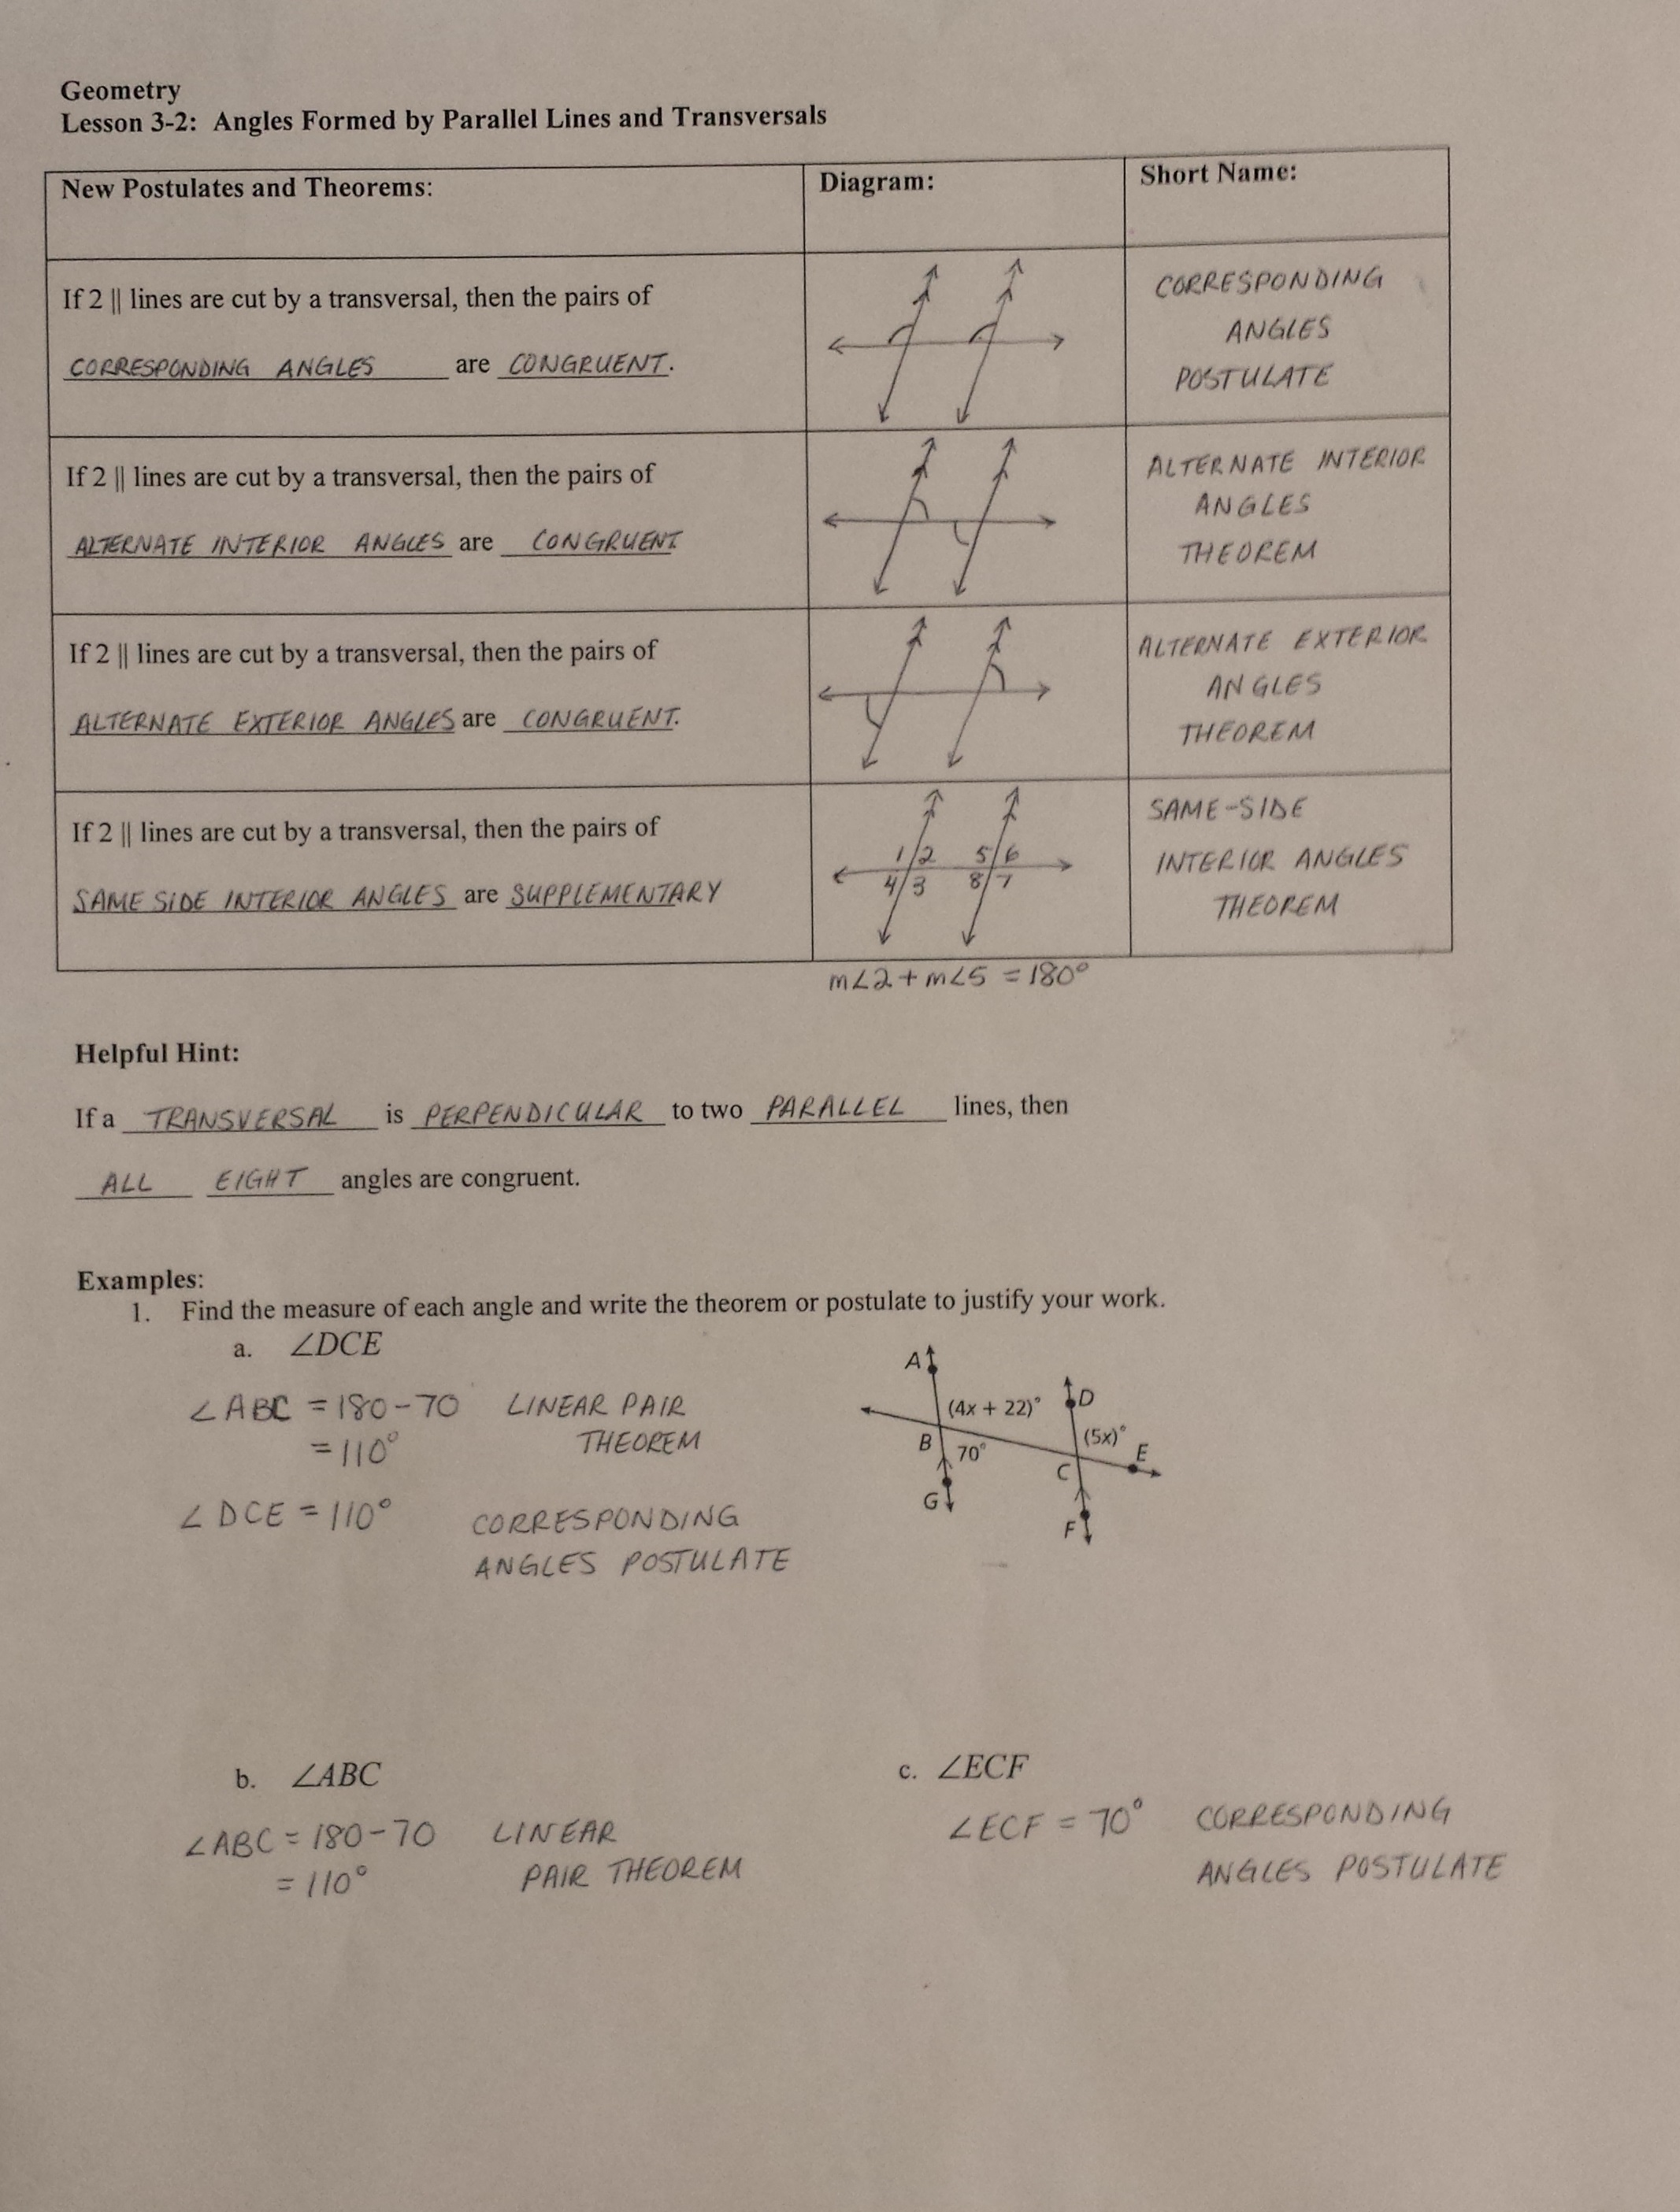 Angles formed by parallel lines and transversals worksheet doc